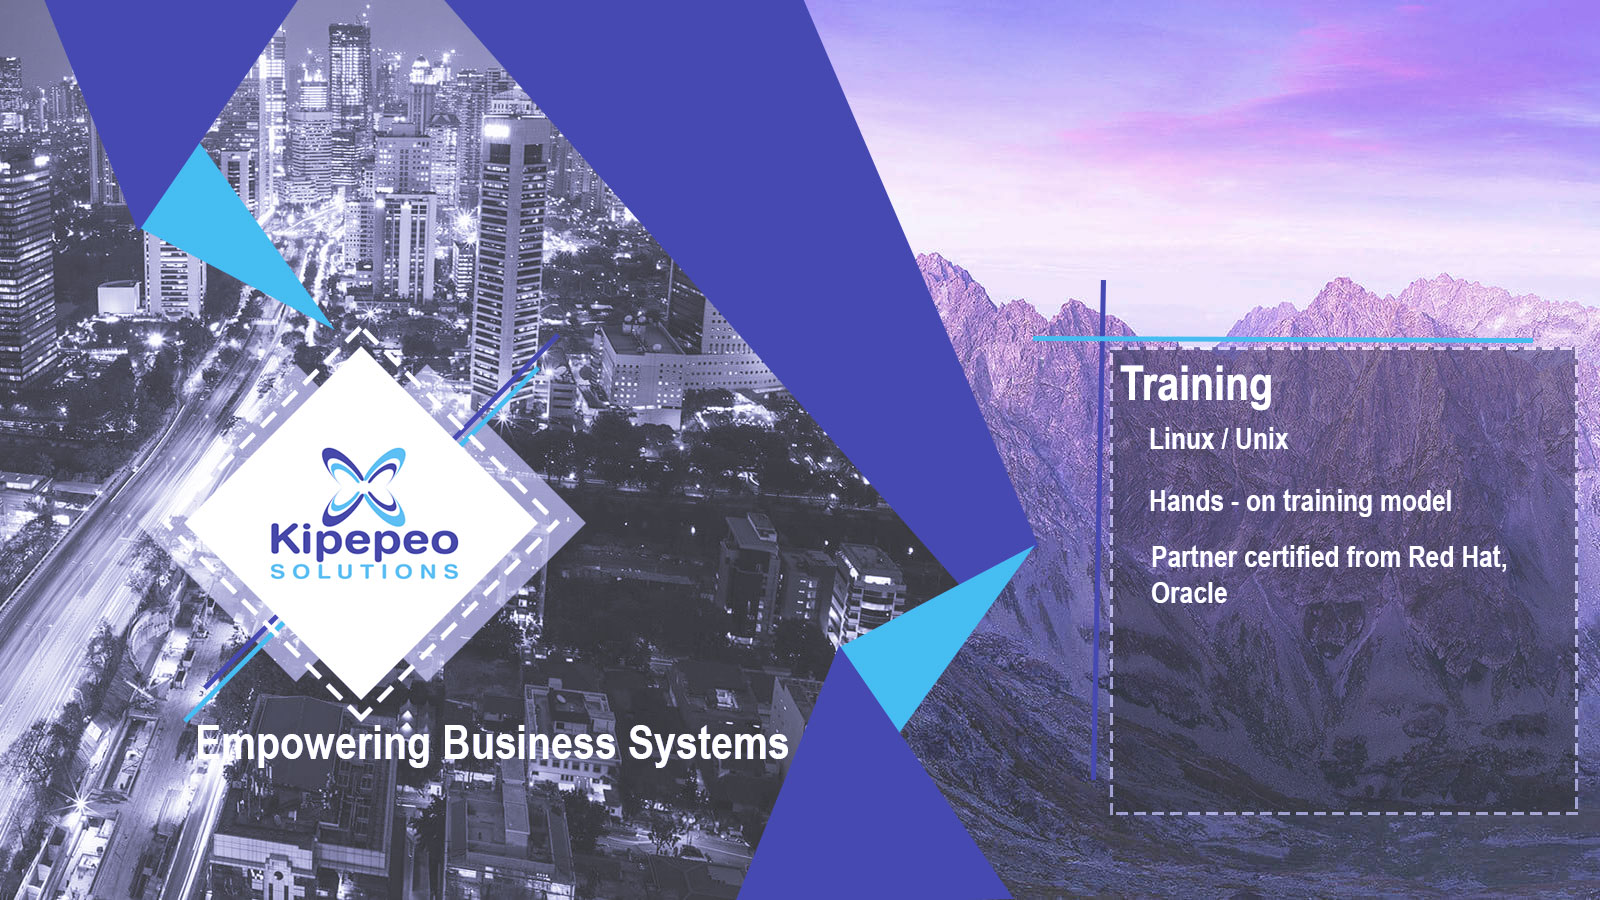 Kipepeo Solutions Training